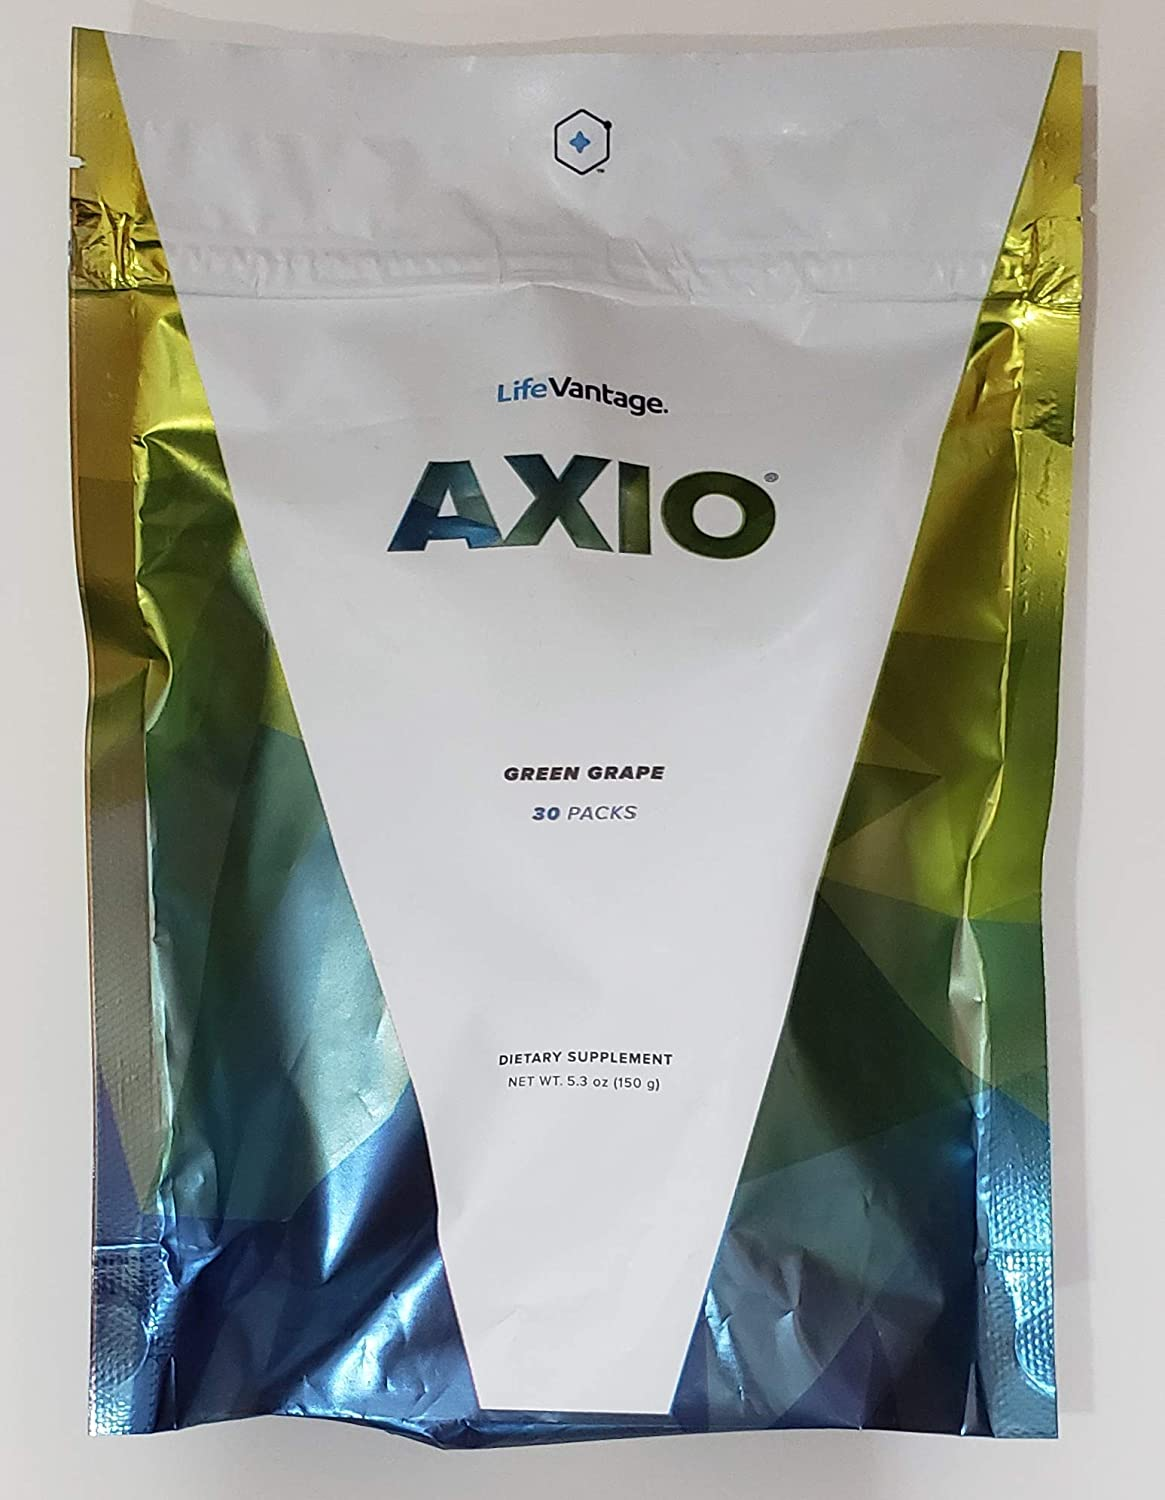 Sale Special Price Protandim AXIO 30Packs Green Grape with discount mask Free Come Flavor